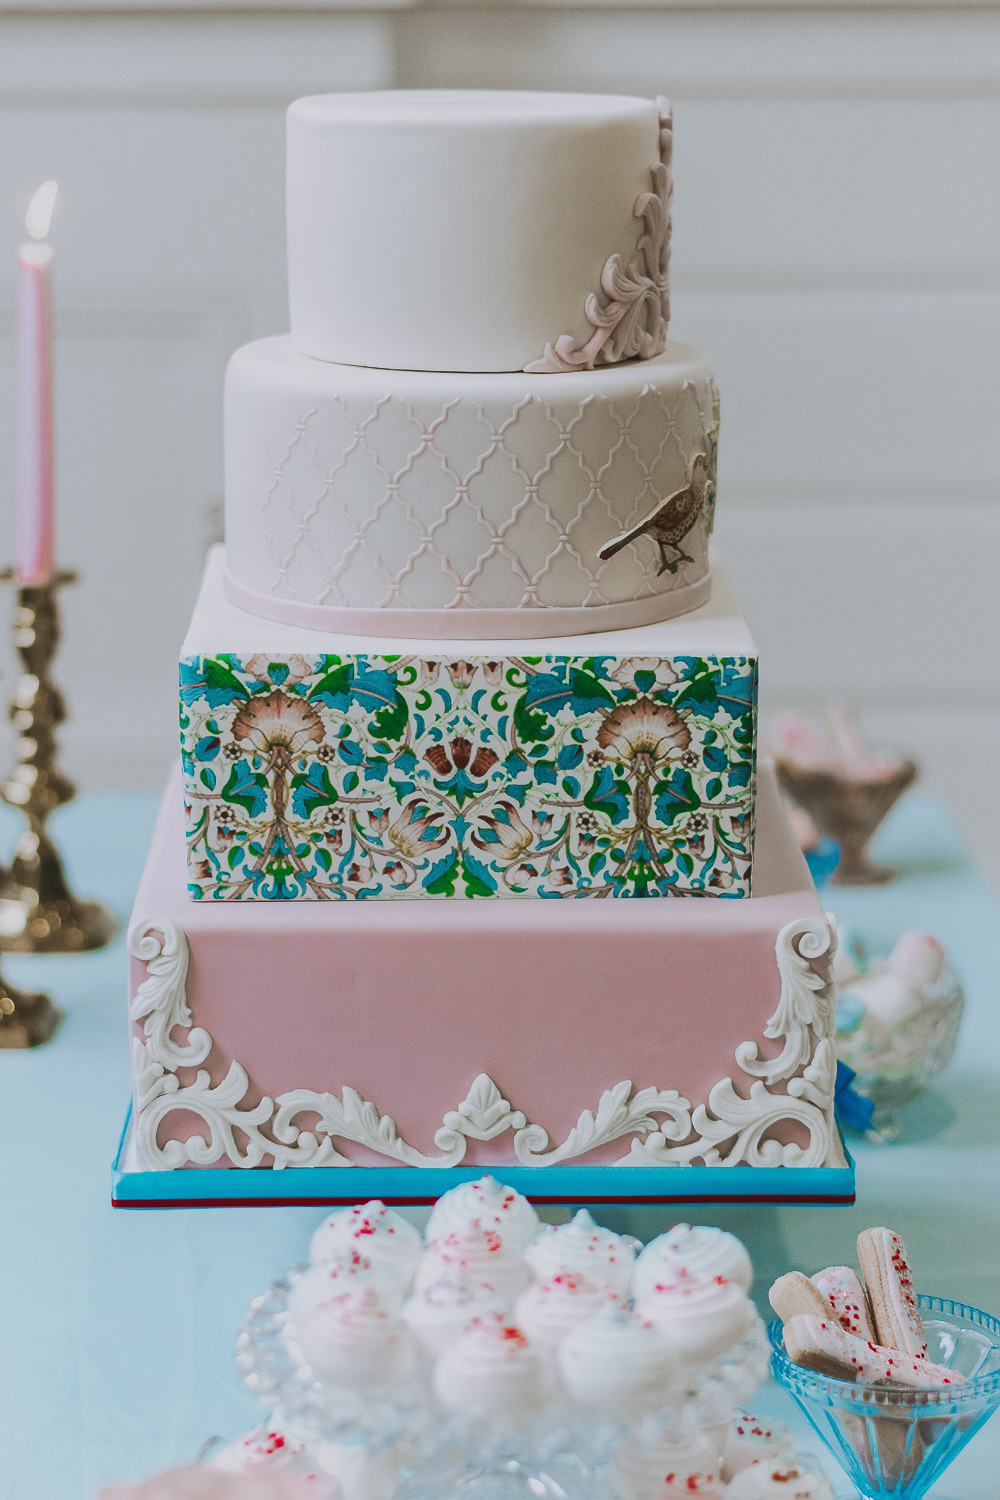 Vintage Cake Painted Square Round Pink Green Red Birds Wes Anderson William Morris Wedding Ideas Jessica Hill Photography